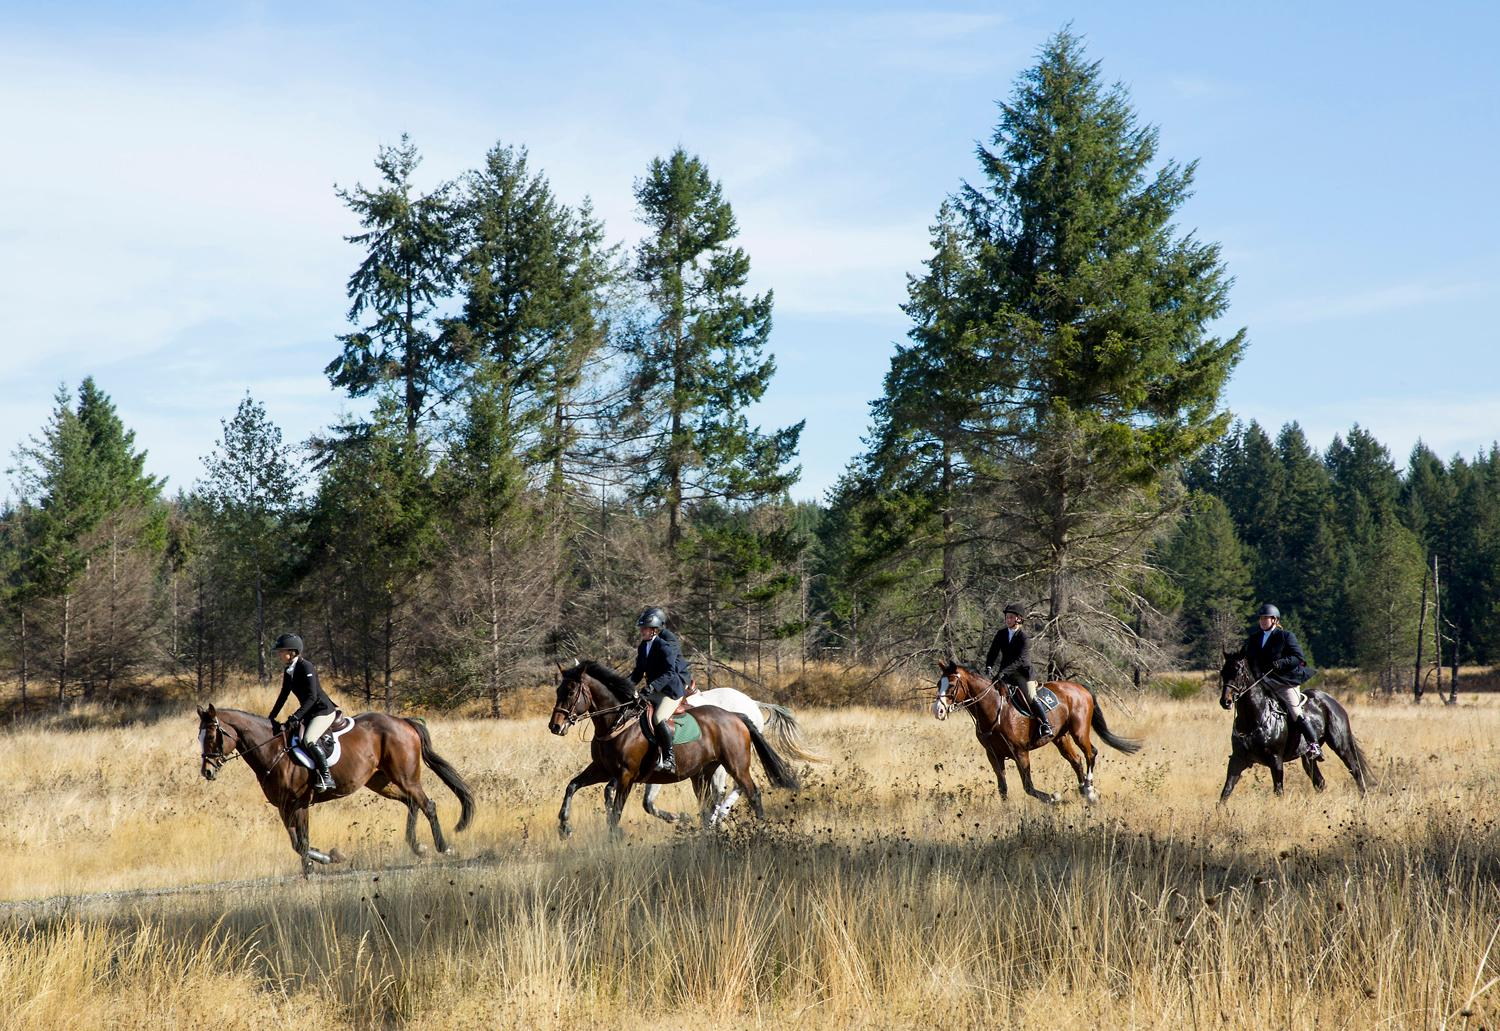 The Woodbrook Hunt Club begins its 91st annual fox hunt near Joint Base Louis McChord. The club uses synthetic fox urine for scent. (Sy Bean / Seattle Refined)